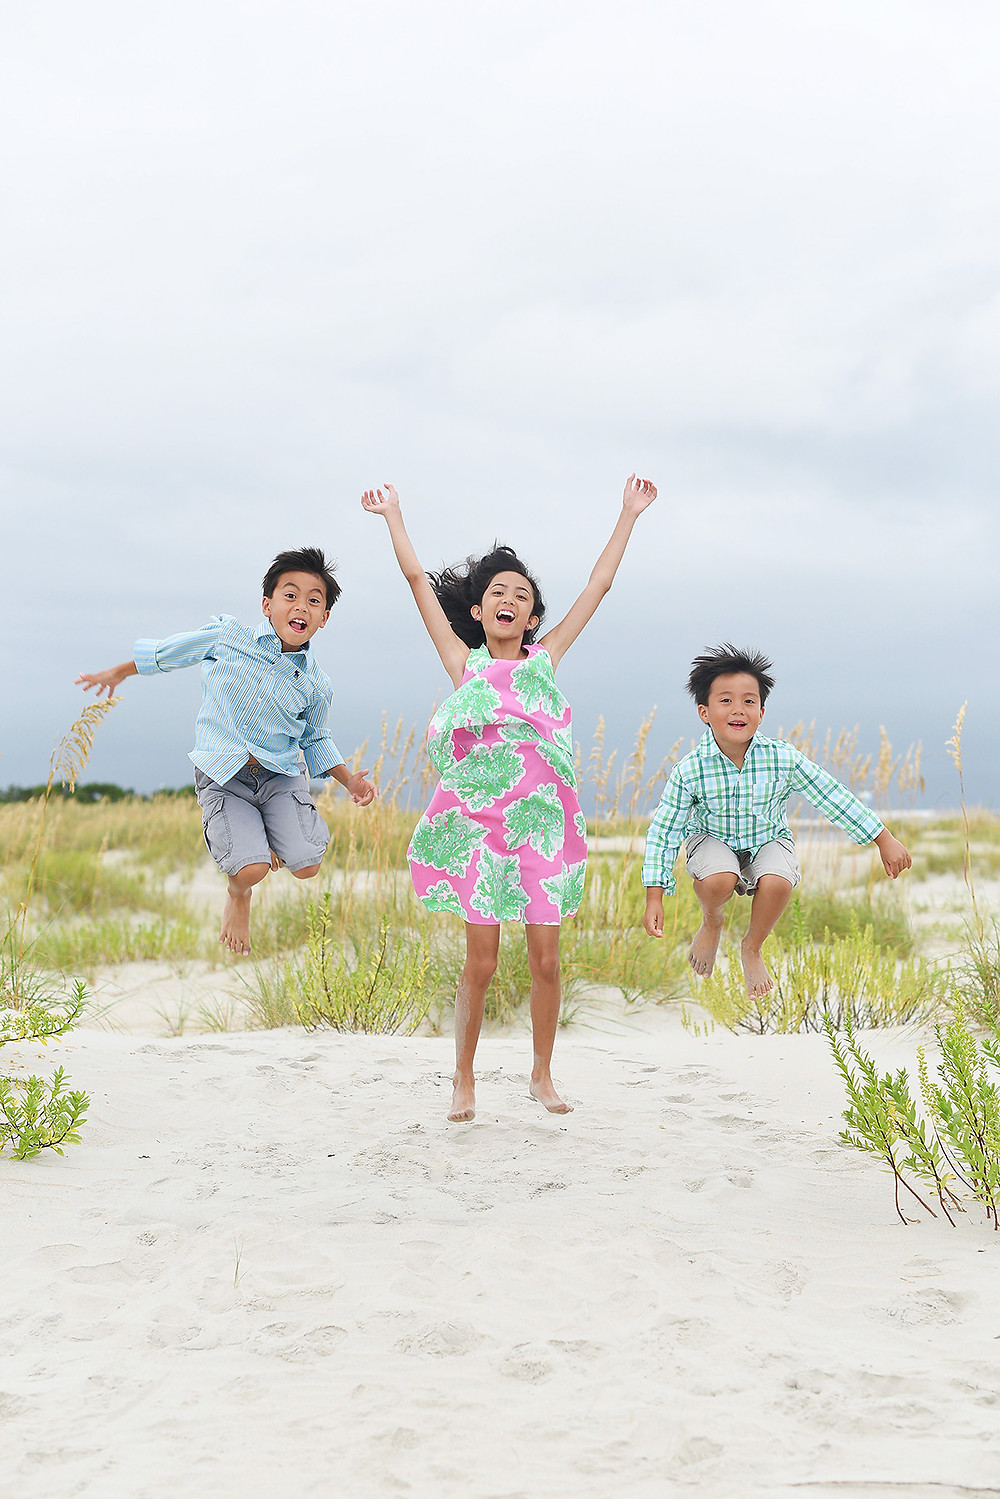 Atlantic Beach Children's Photo